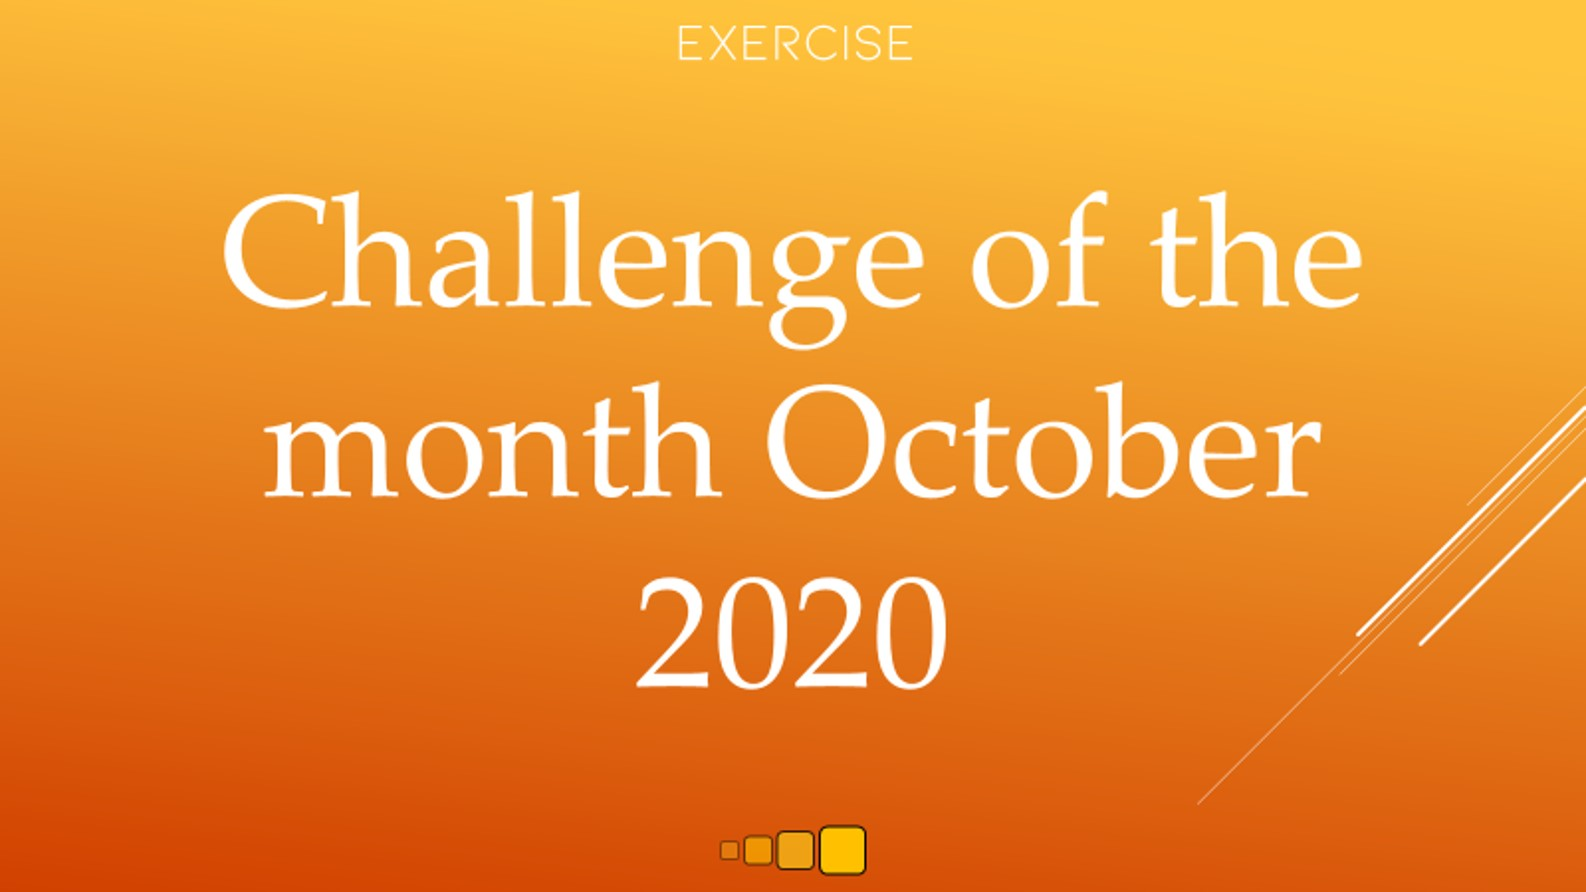 challenge of the month october 2020